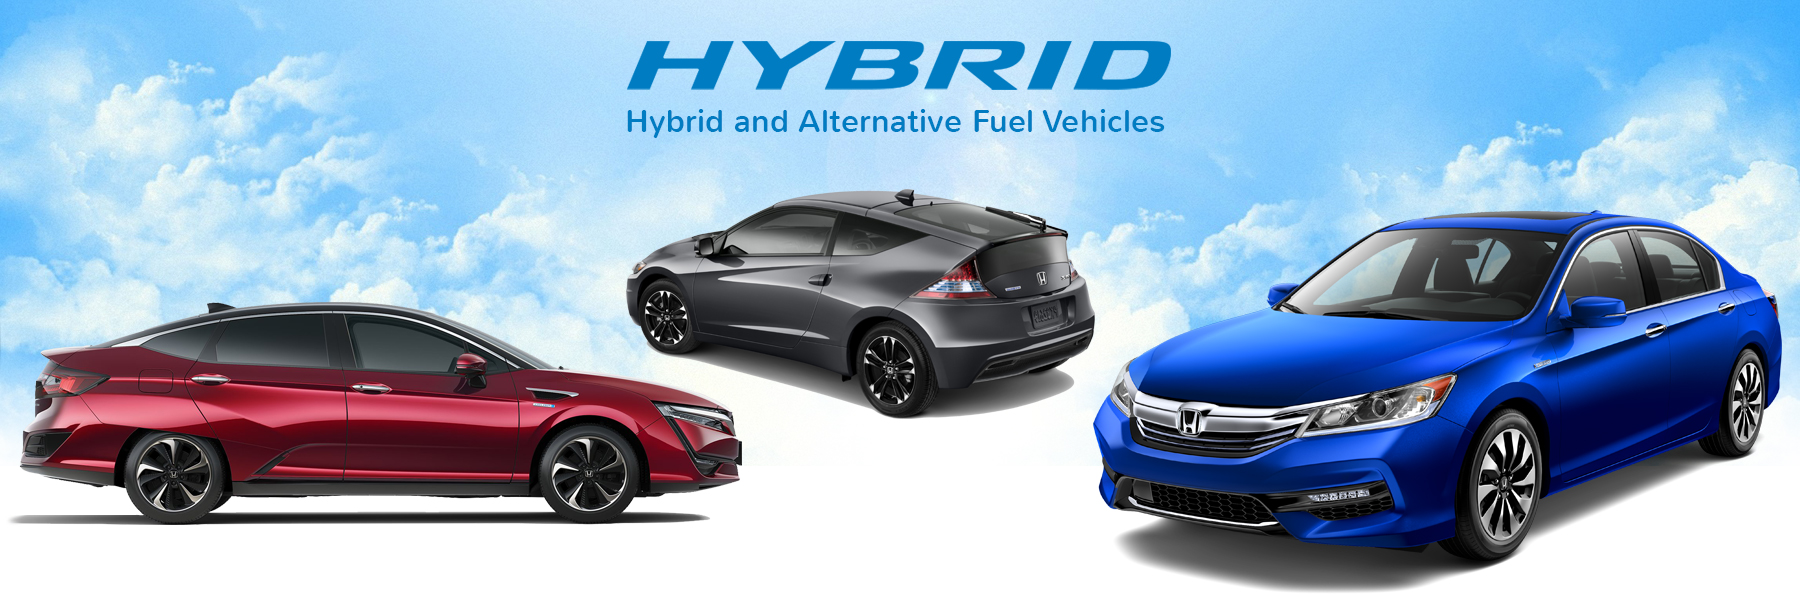 Hybrid cars alternative fuel vehicles metro milwaukee for Honda hybrid cars